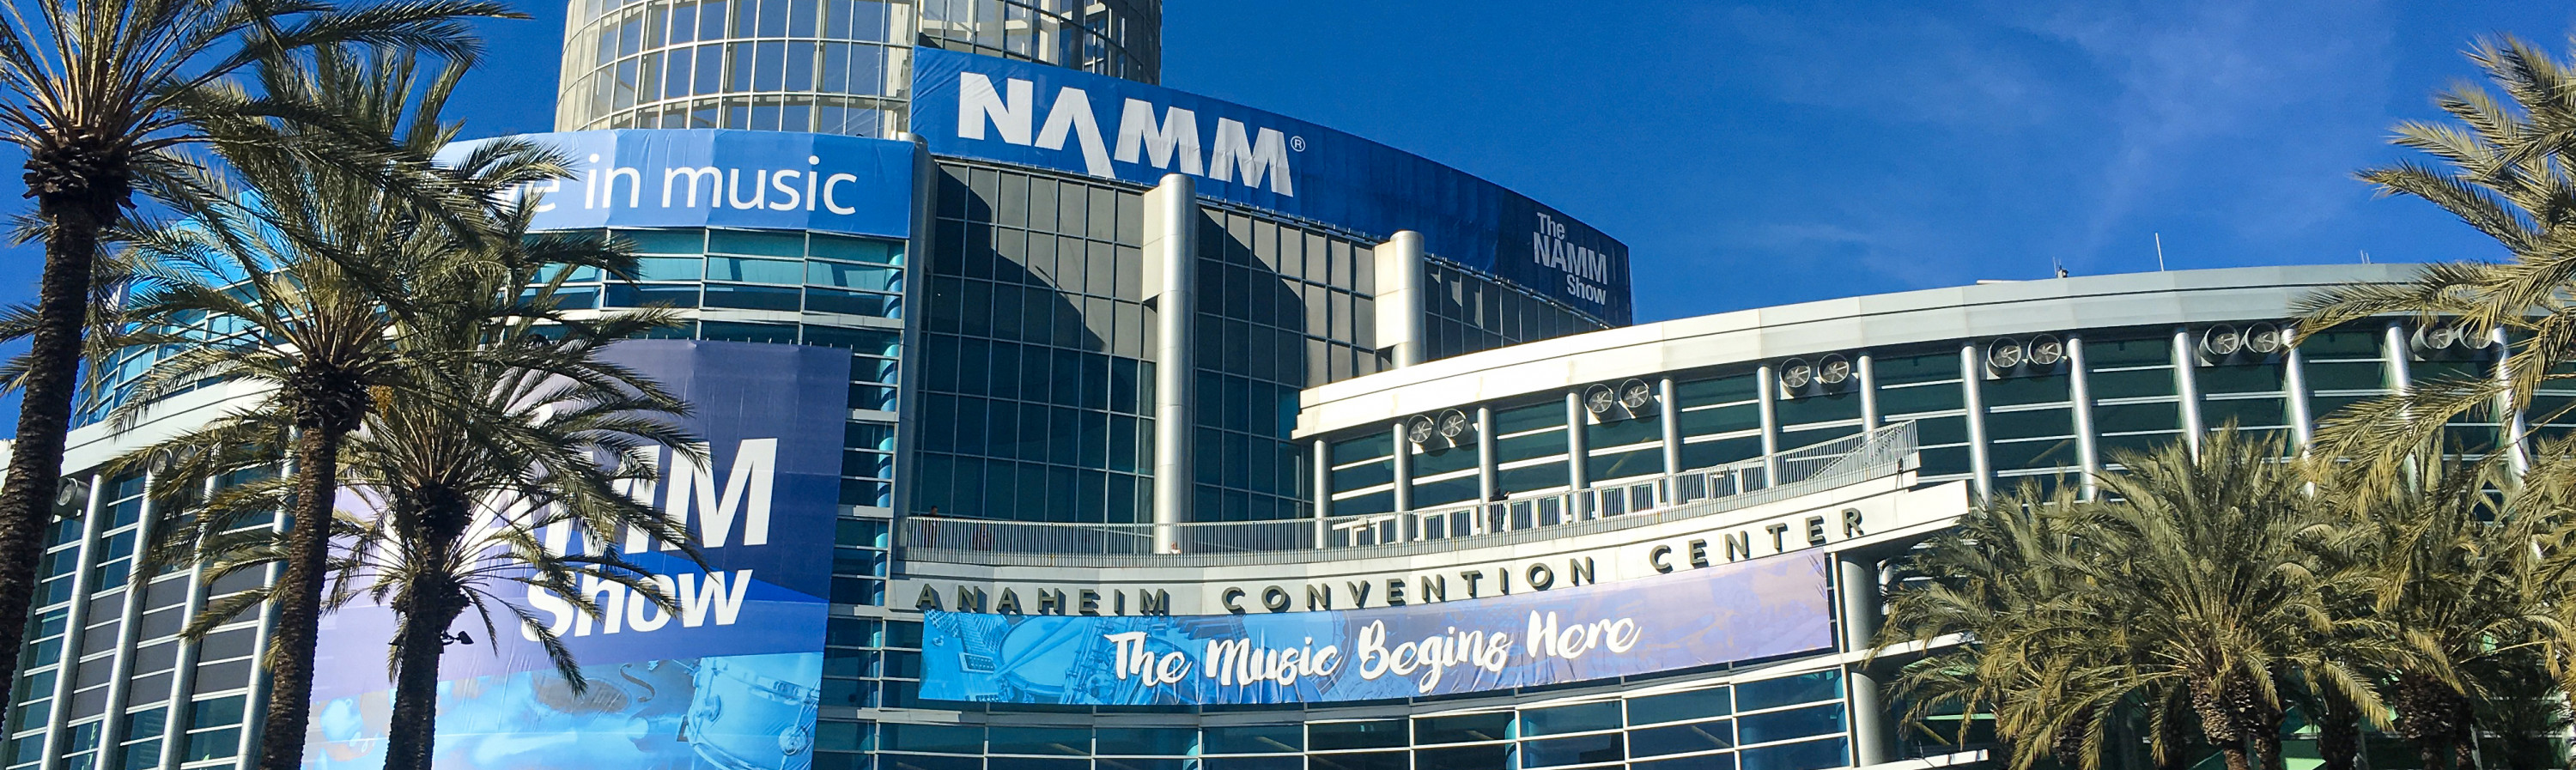 Adam Hall Group au NAMM d'hiver 2020